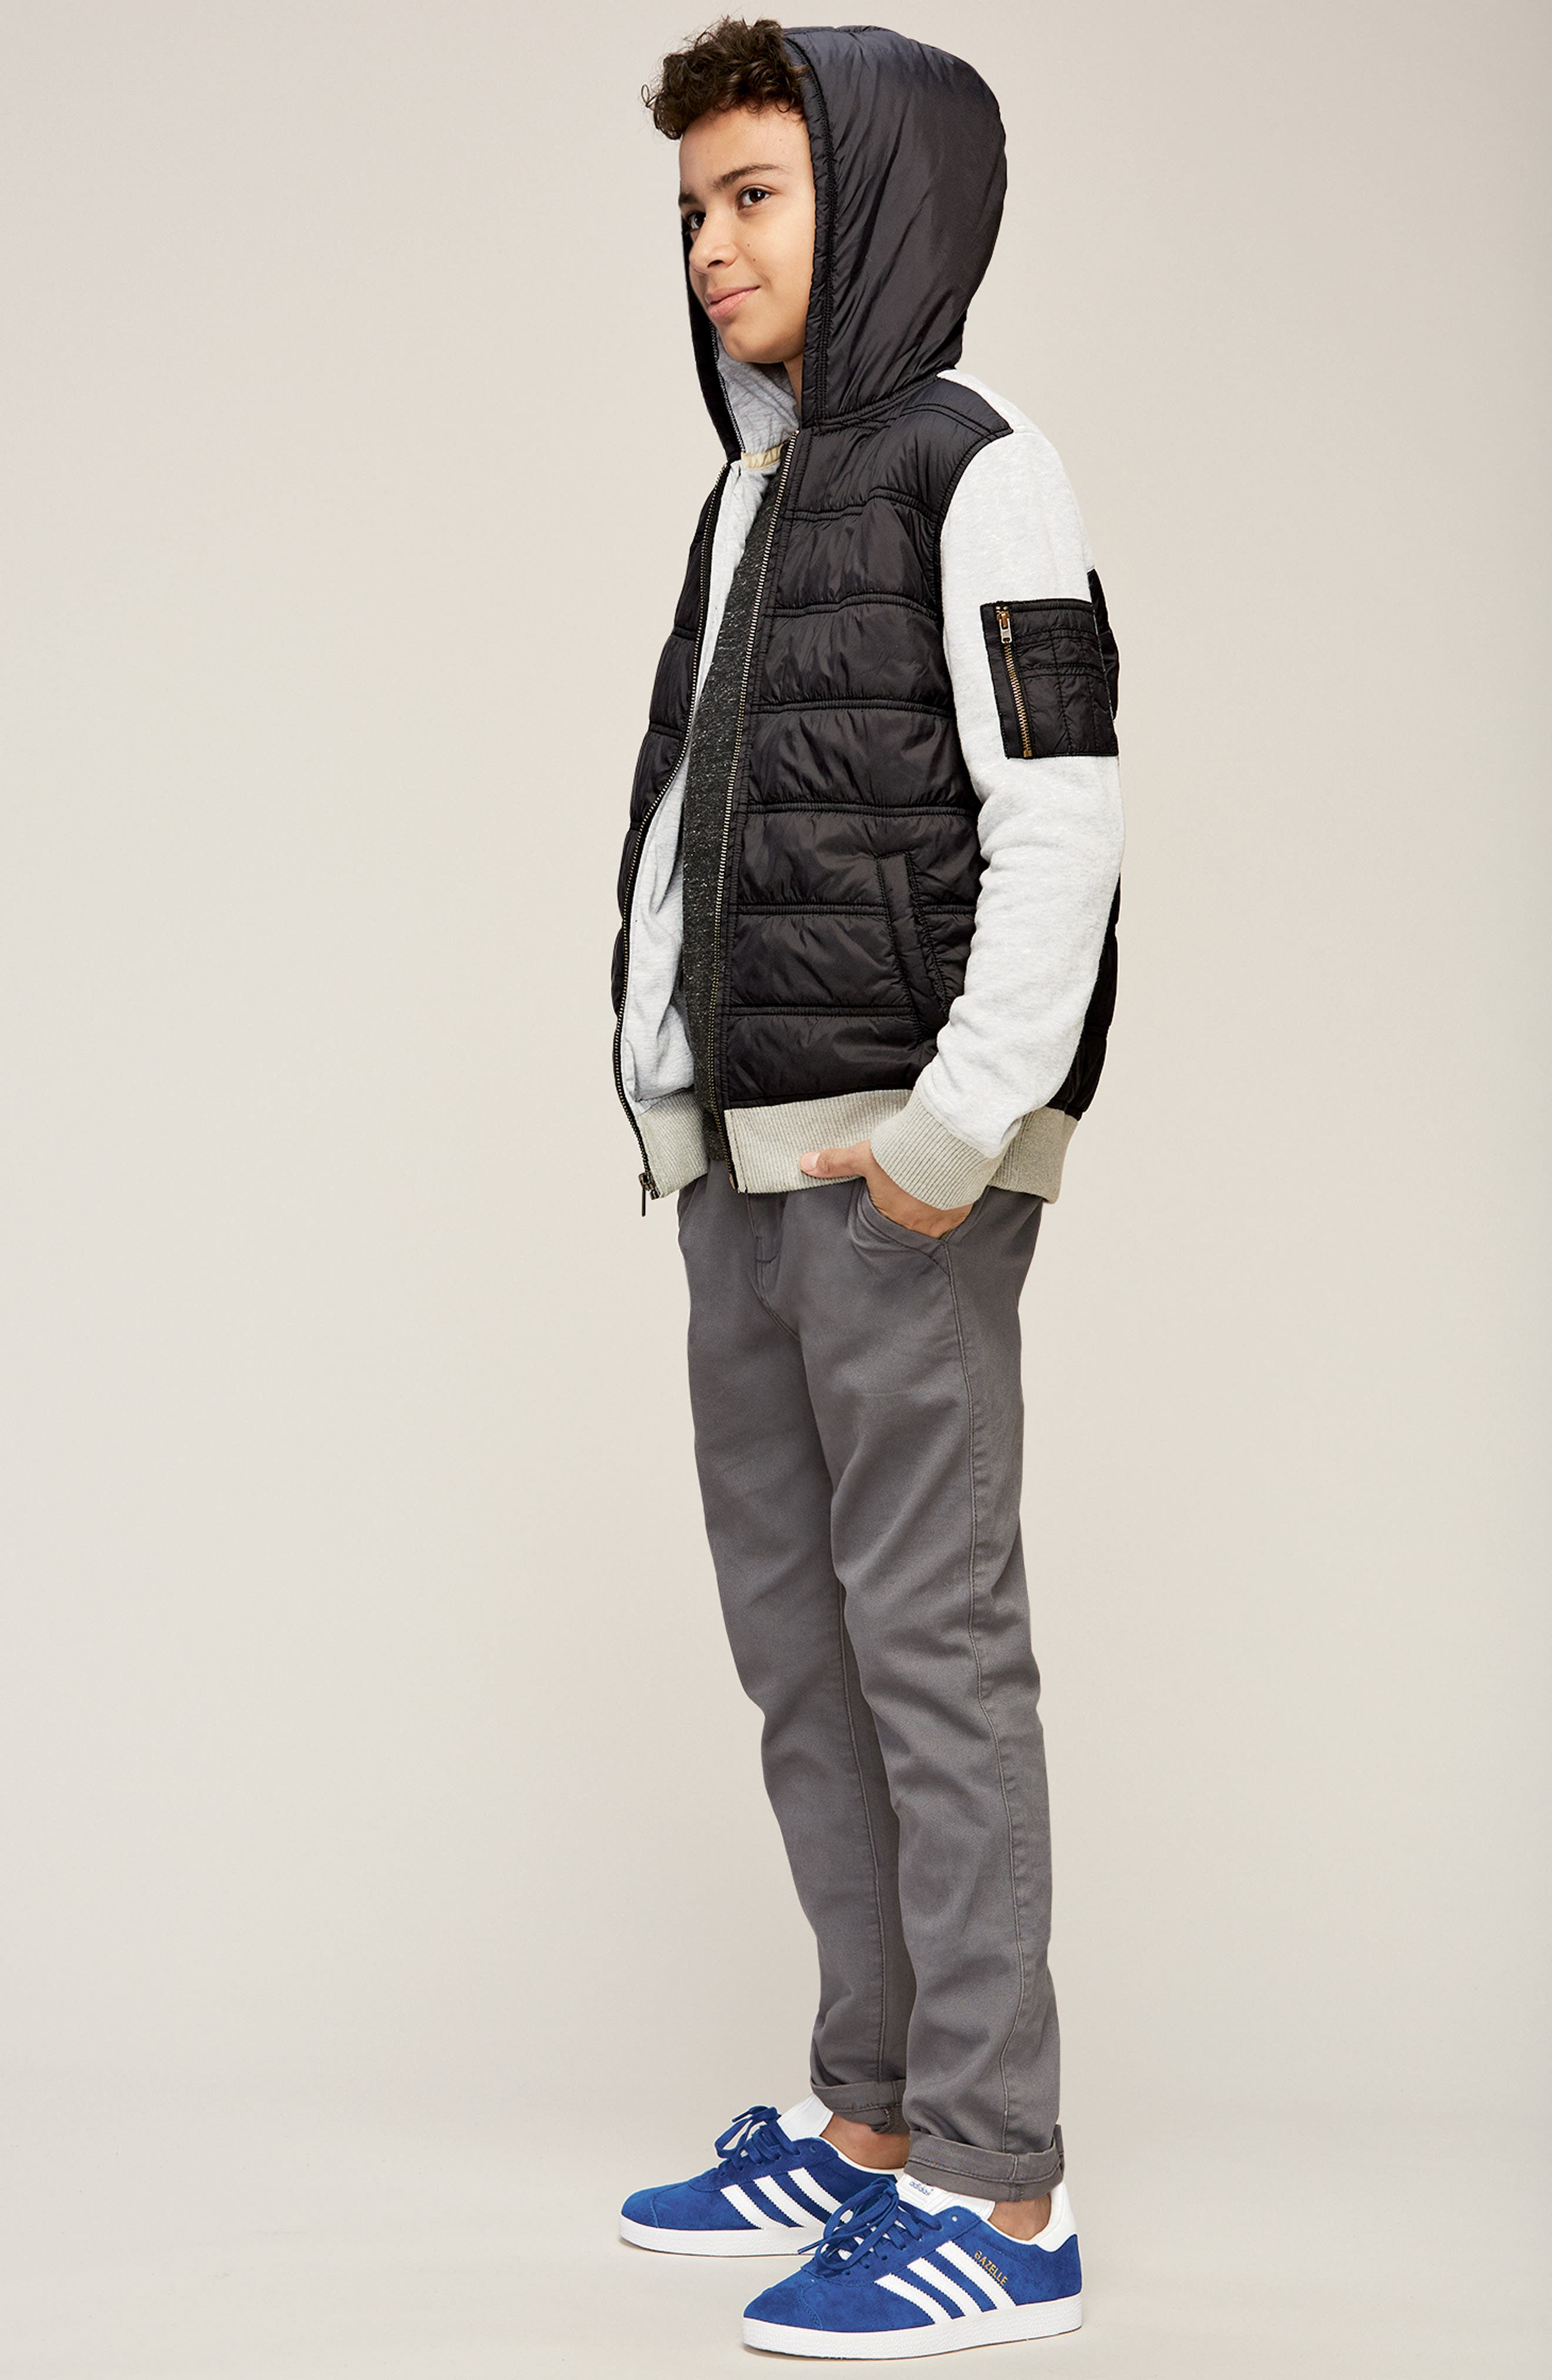 Tucker + Tate Jacket, T-Shirt & Pants Outfit with Accessories (Big Boys)